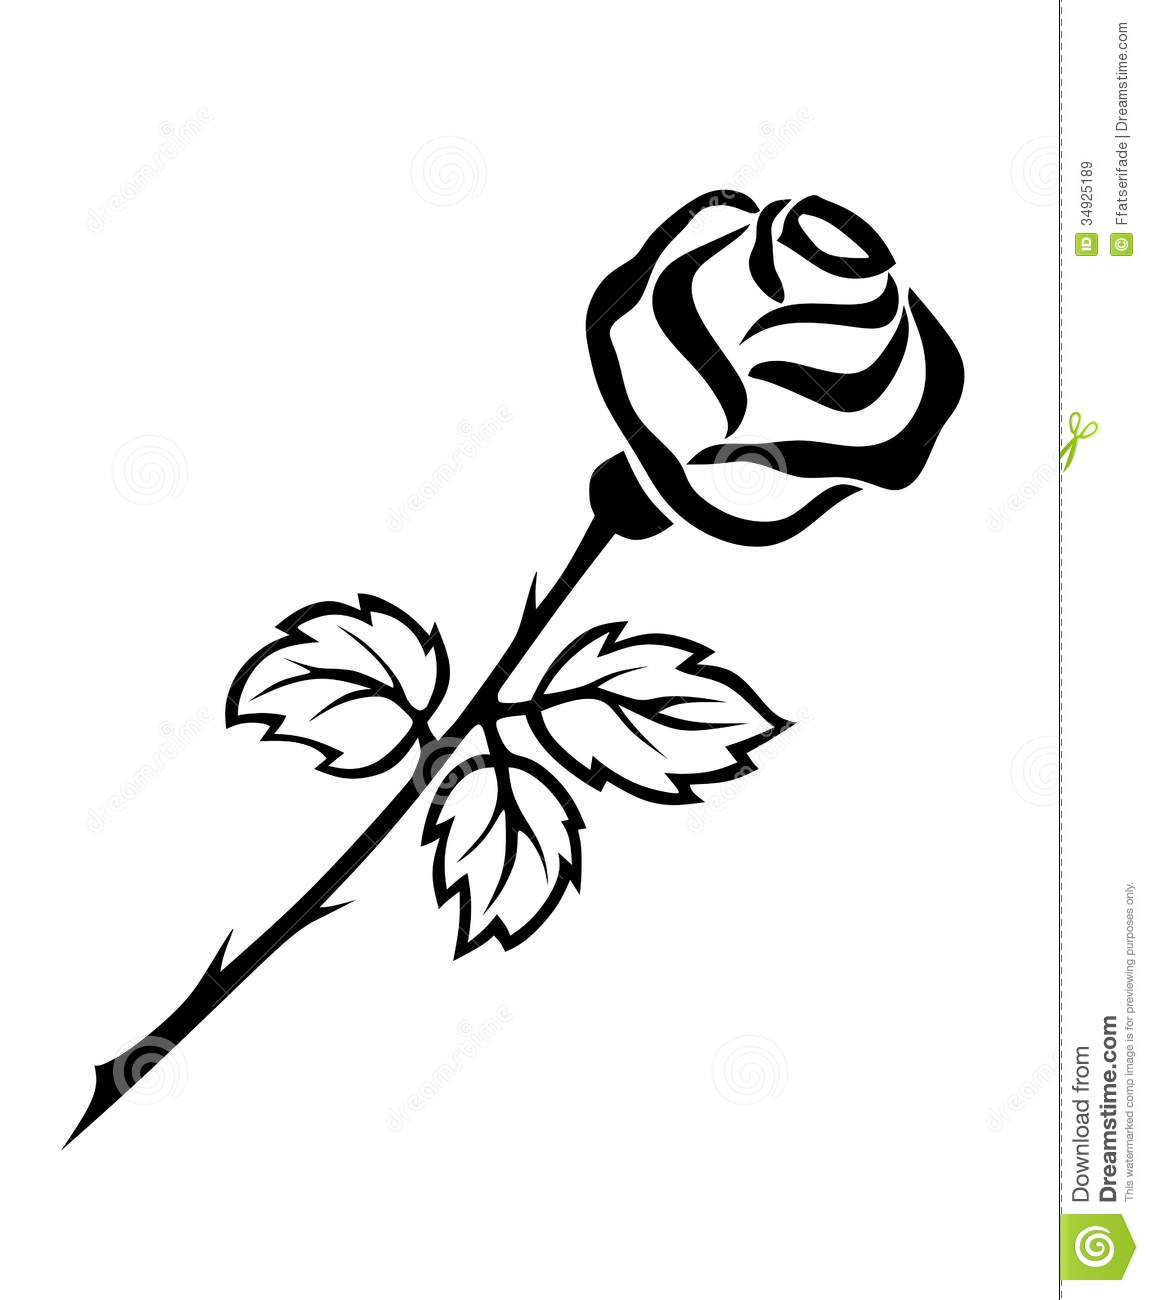 1149x1300 Rose Black And White Clipart